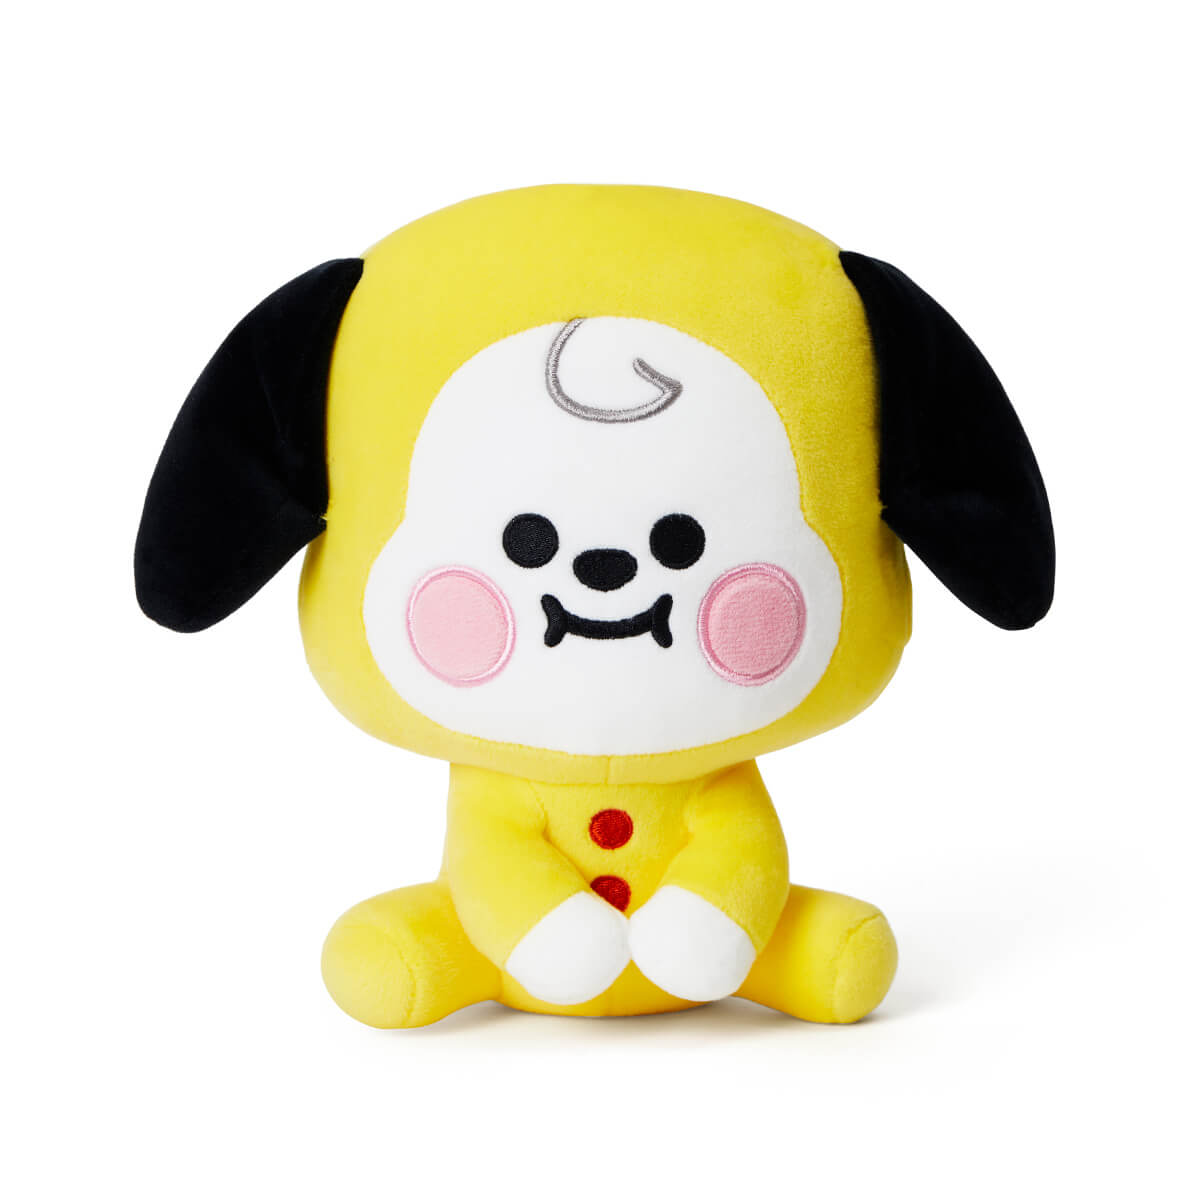 BT21 CHIMMY Baby Sitting Doll 7.9 inch